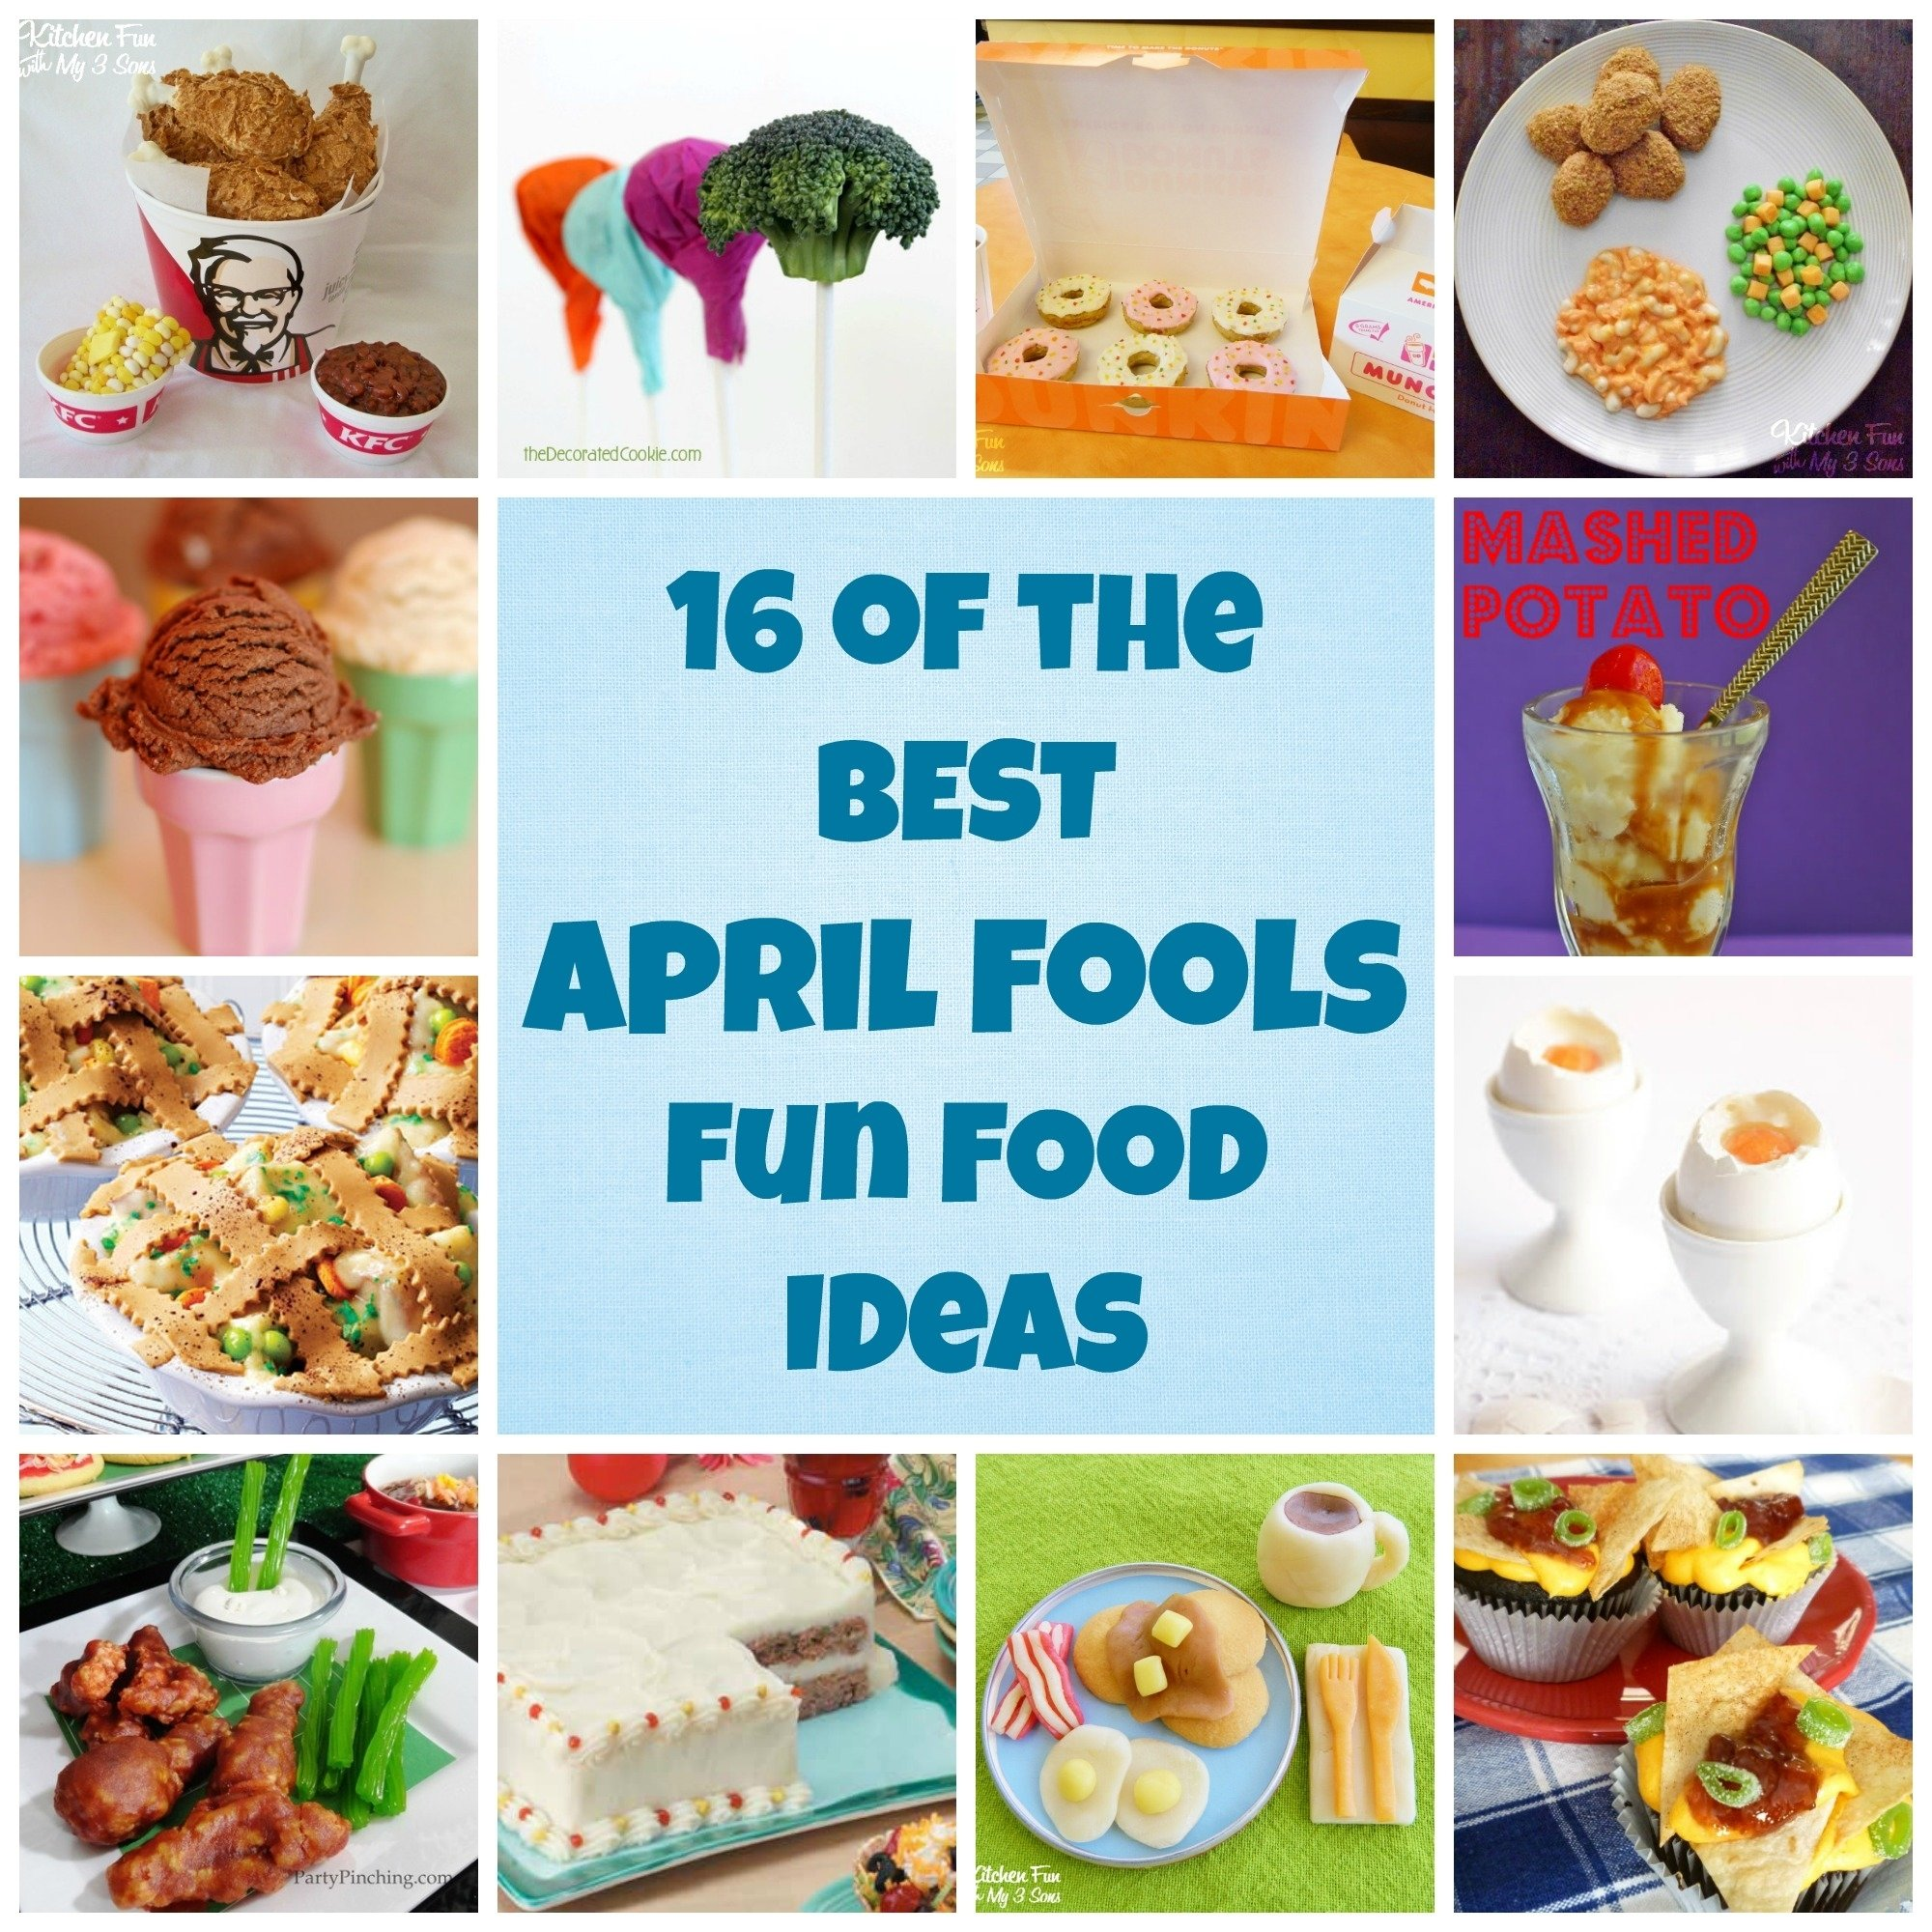 april-fools-fun-food-ideas